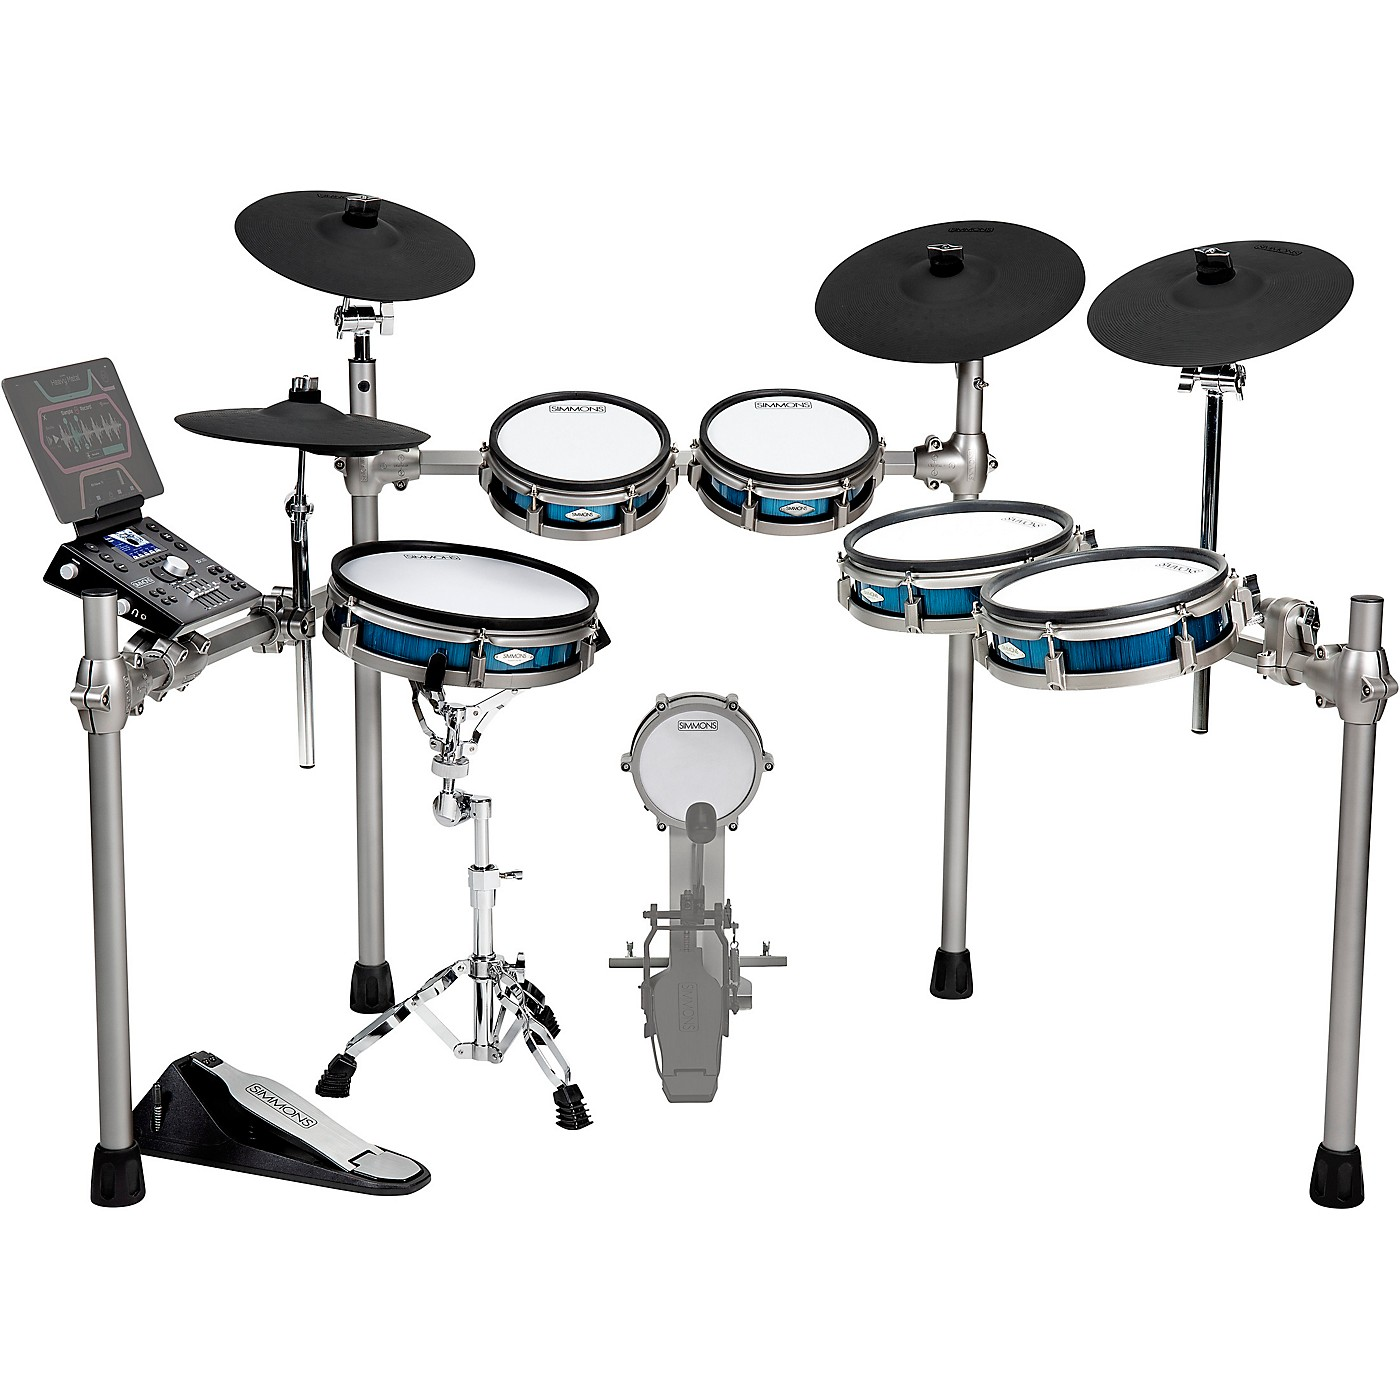 Simmons SD1200 Expanded Electronic Drum Kit with Mesh Pads thumbnail